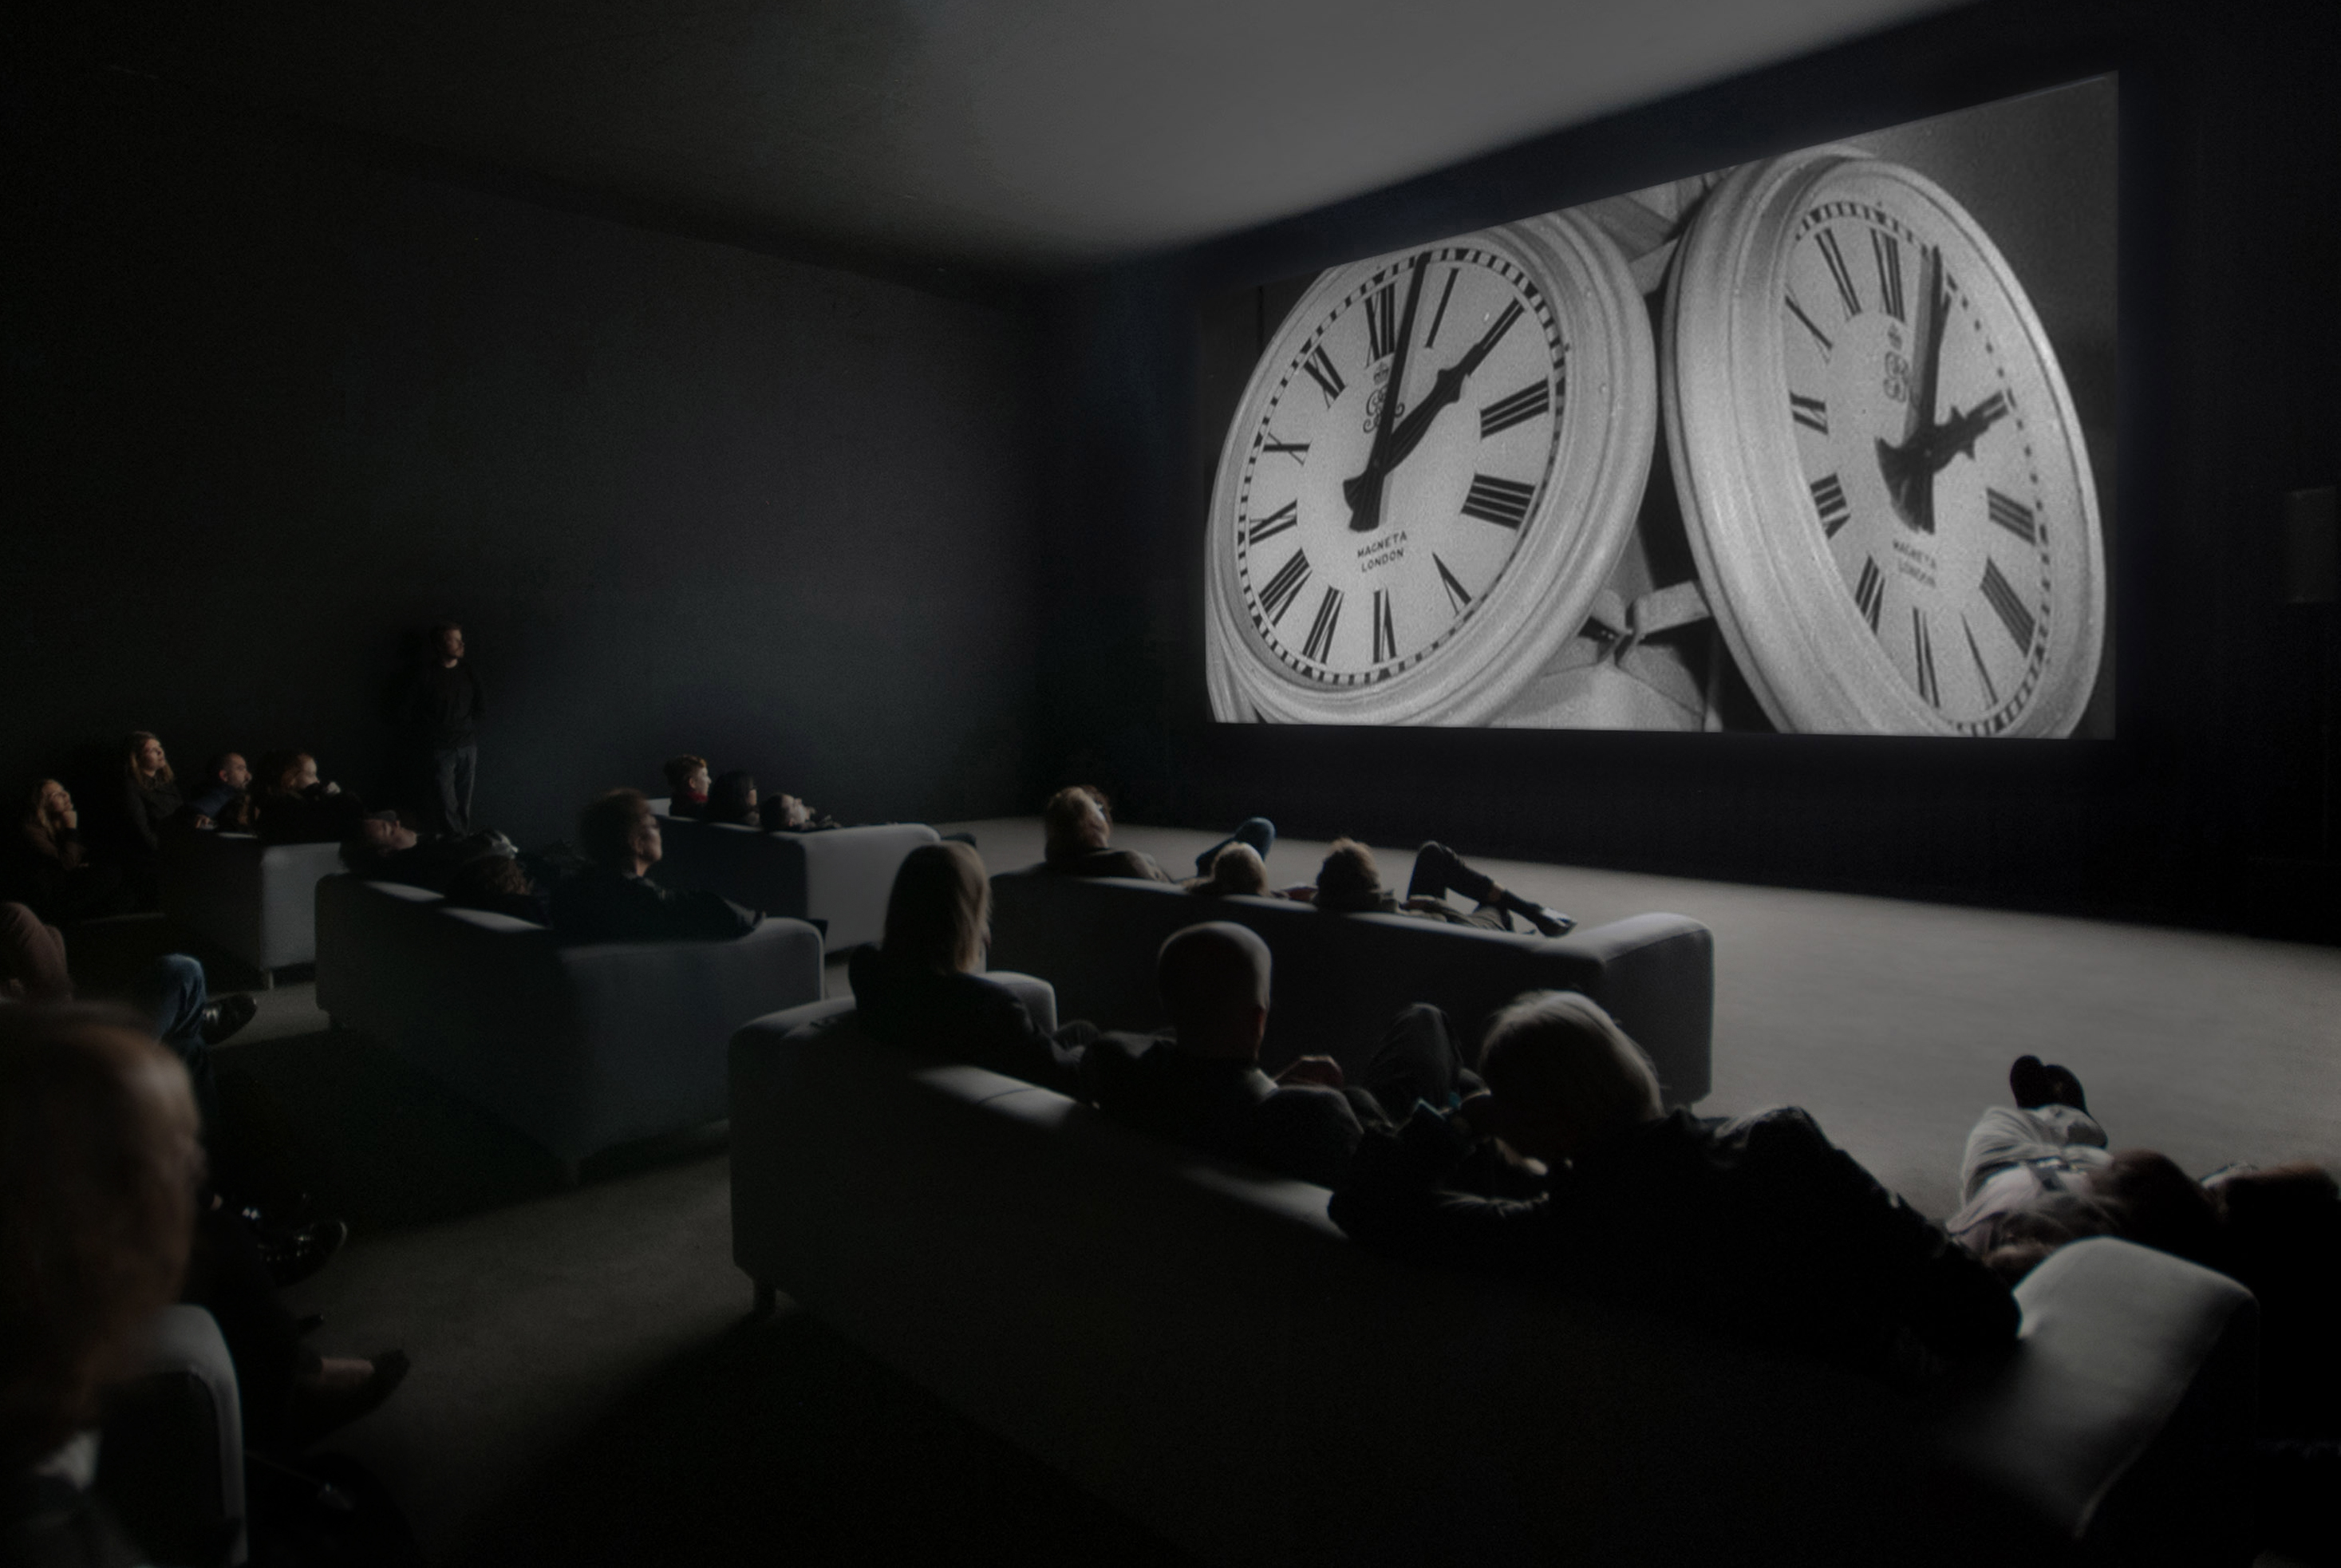 Christian Marclay, The Clock, 2010 (installation view), single channel video, duration: 24 hours © the artist. Courtesy White Cube, London and Paula Cooper Gallery, New York